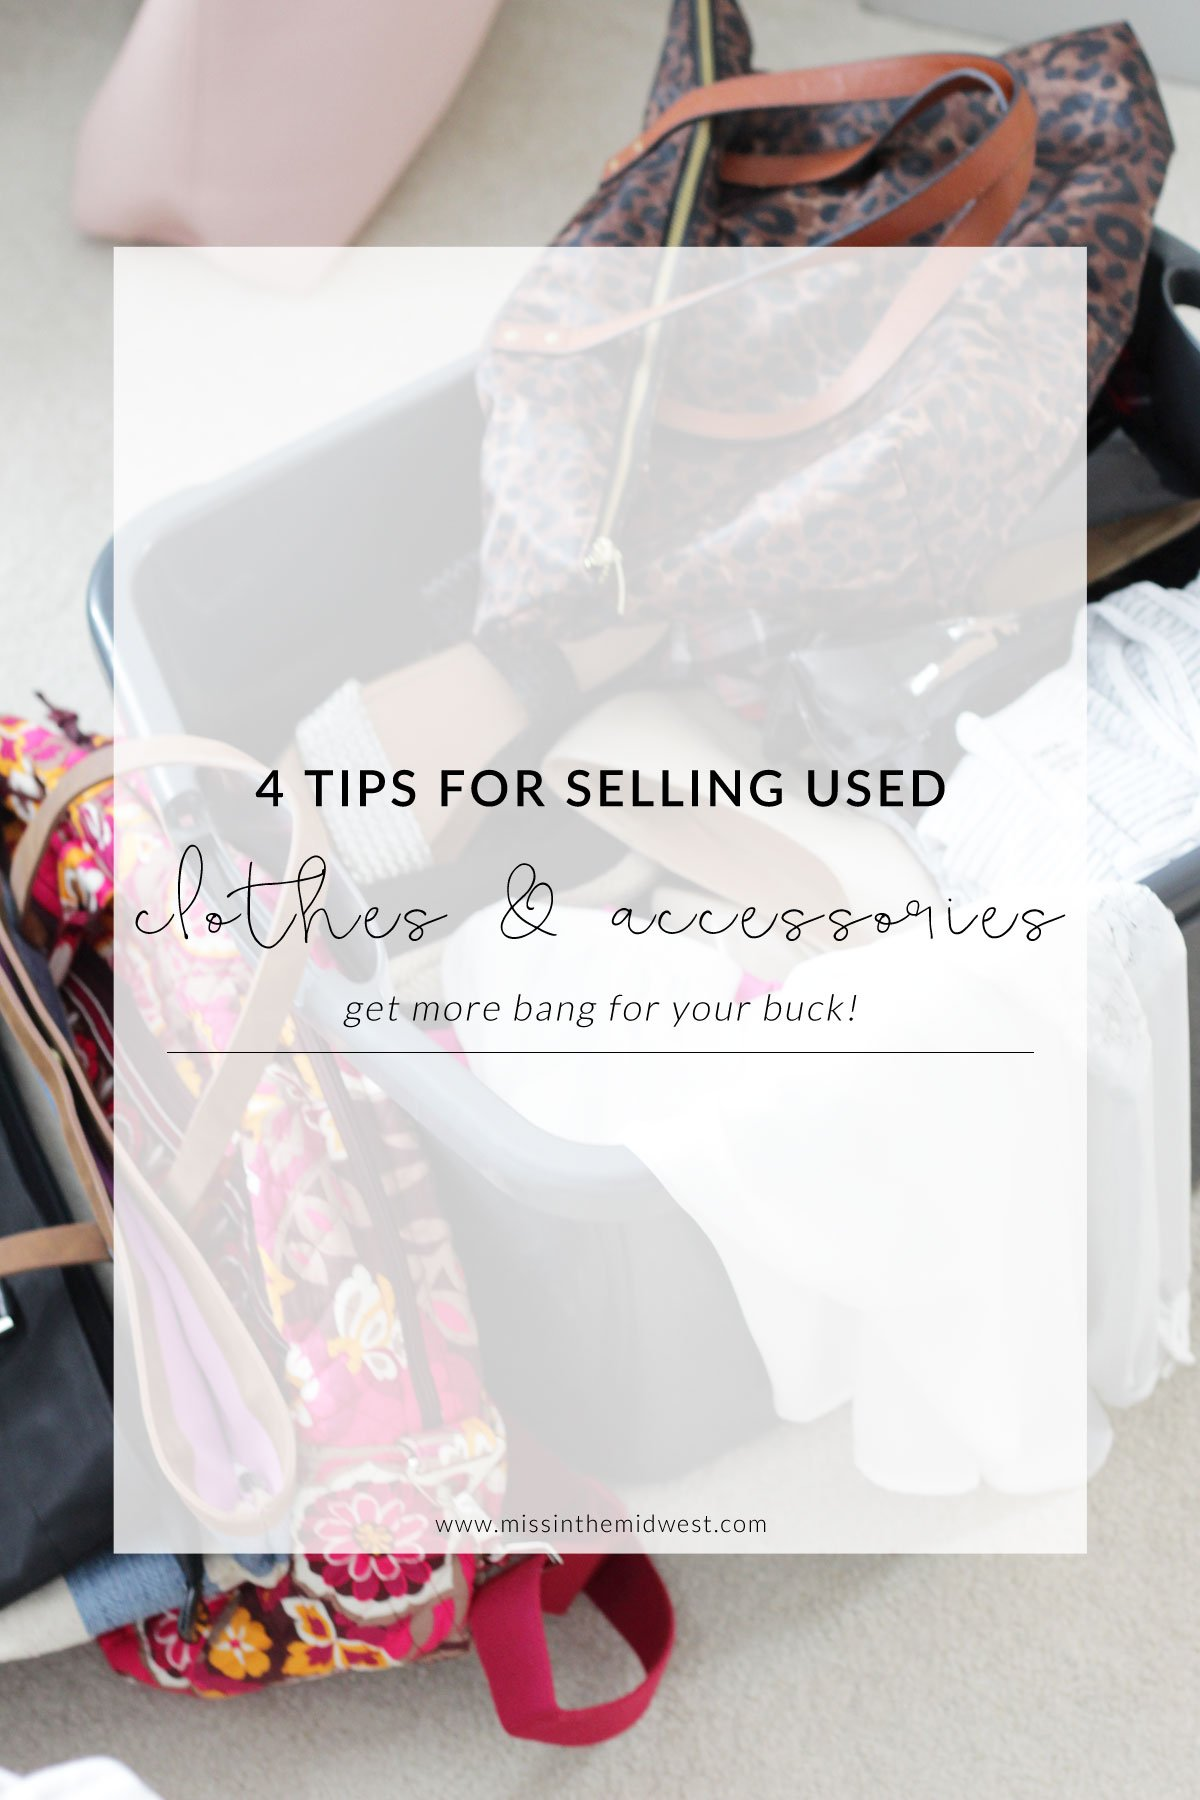 I Want To Sell My Used Clothes Online